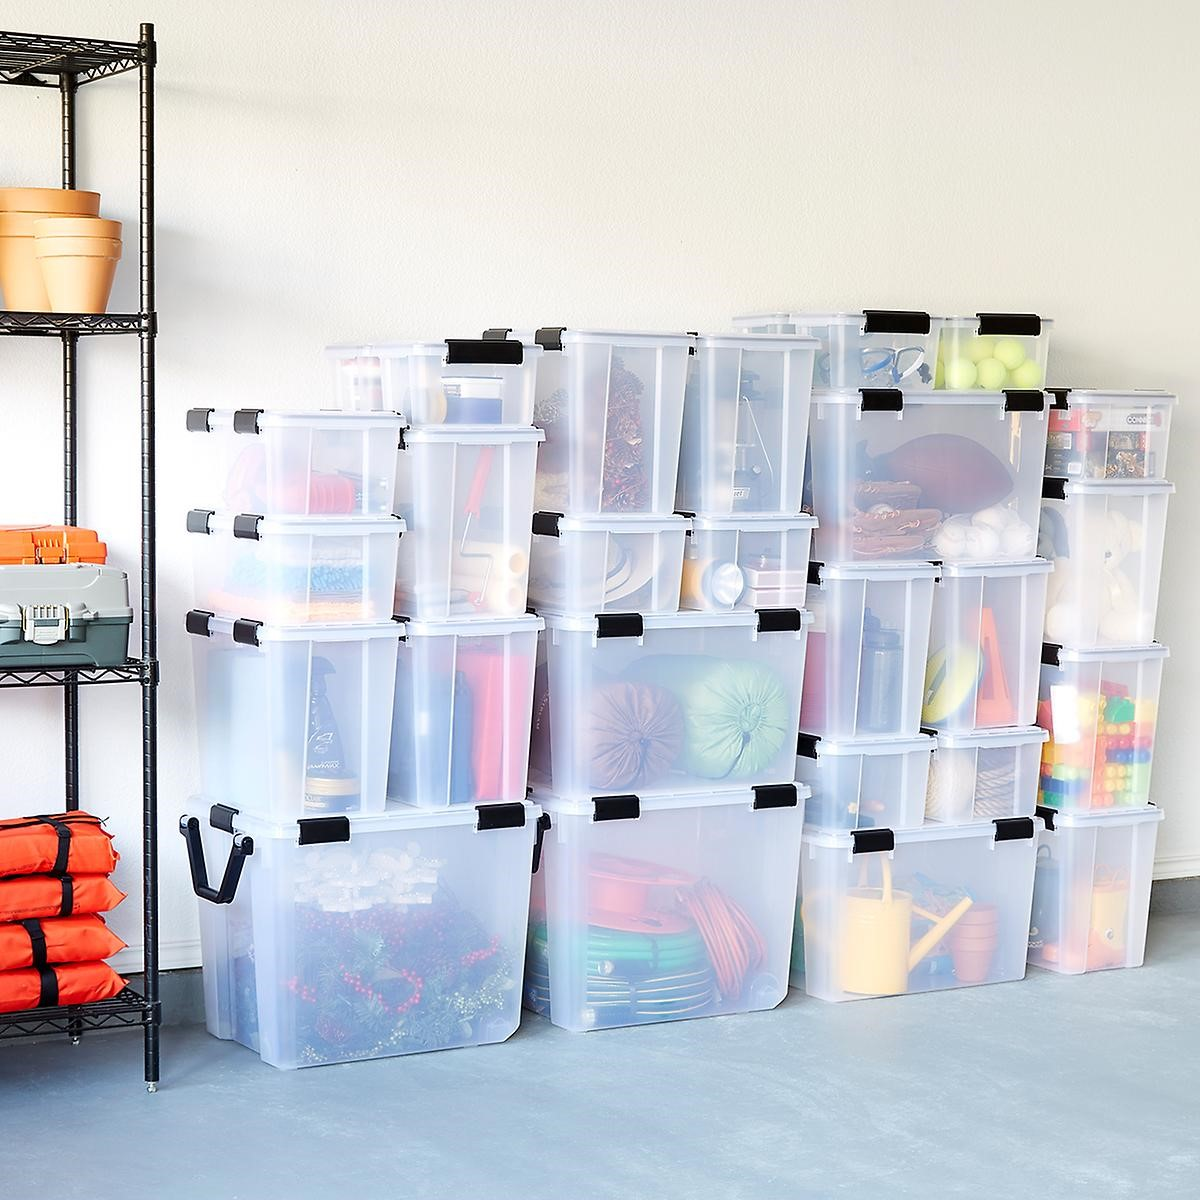 4. Get Organized with Plastic Containers via Simphome